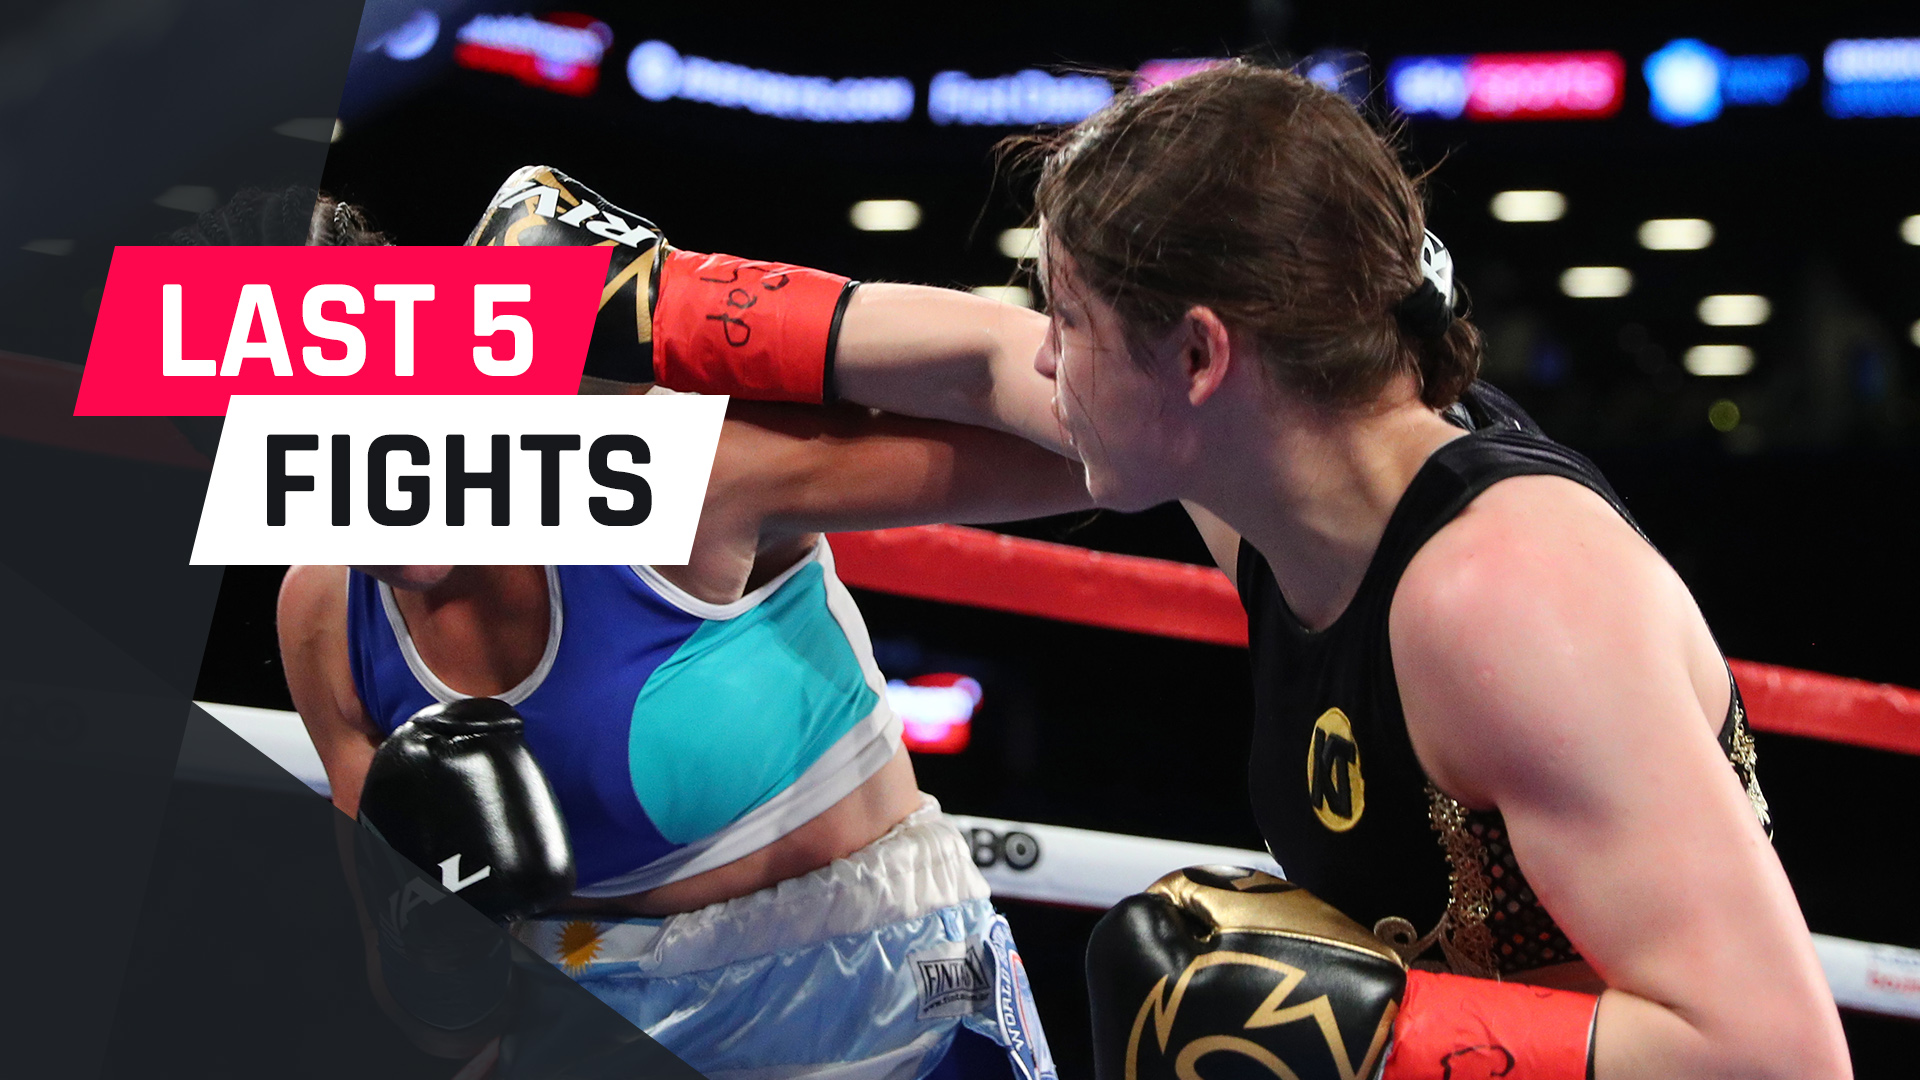 Katie Taylor To Face Cindy Serrano On Oct 6 In Chicago